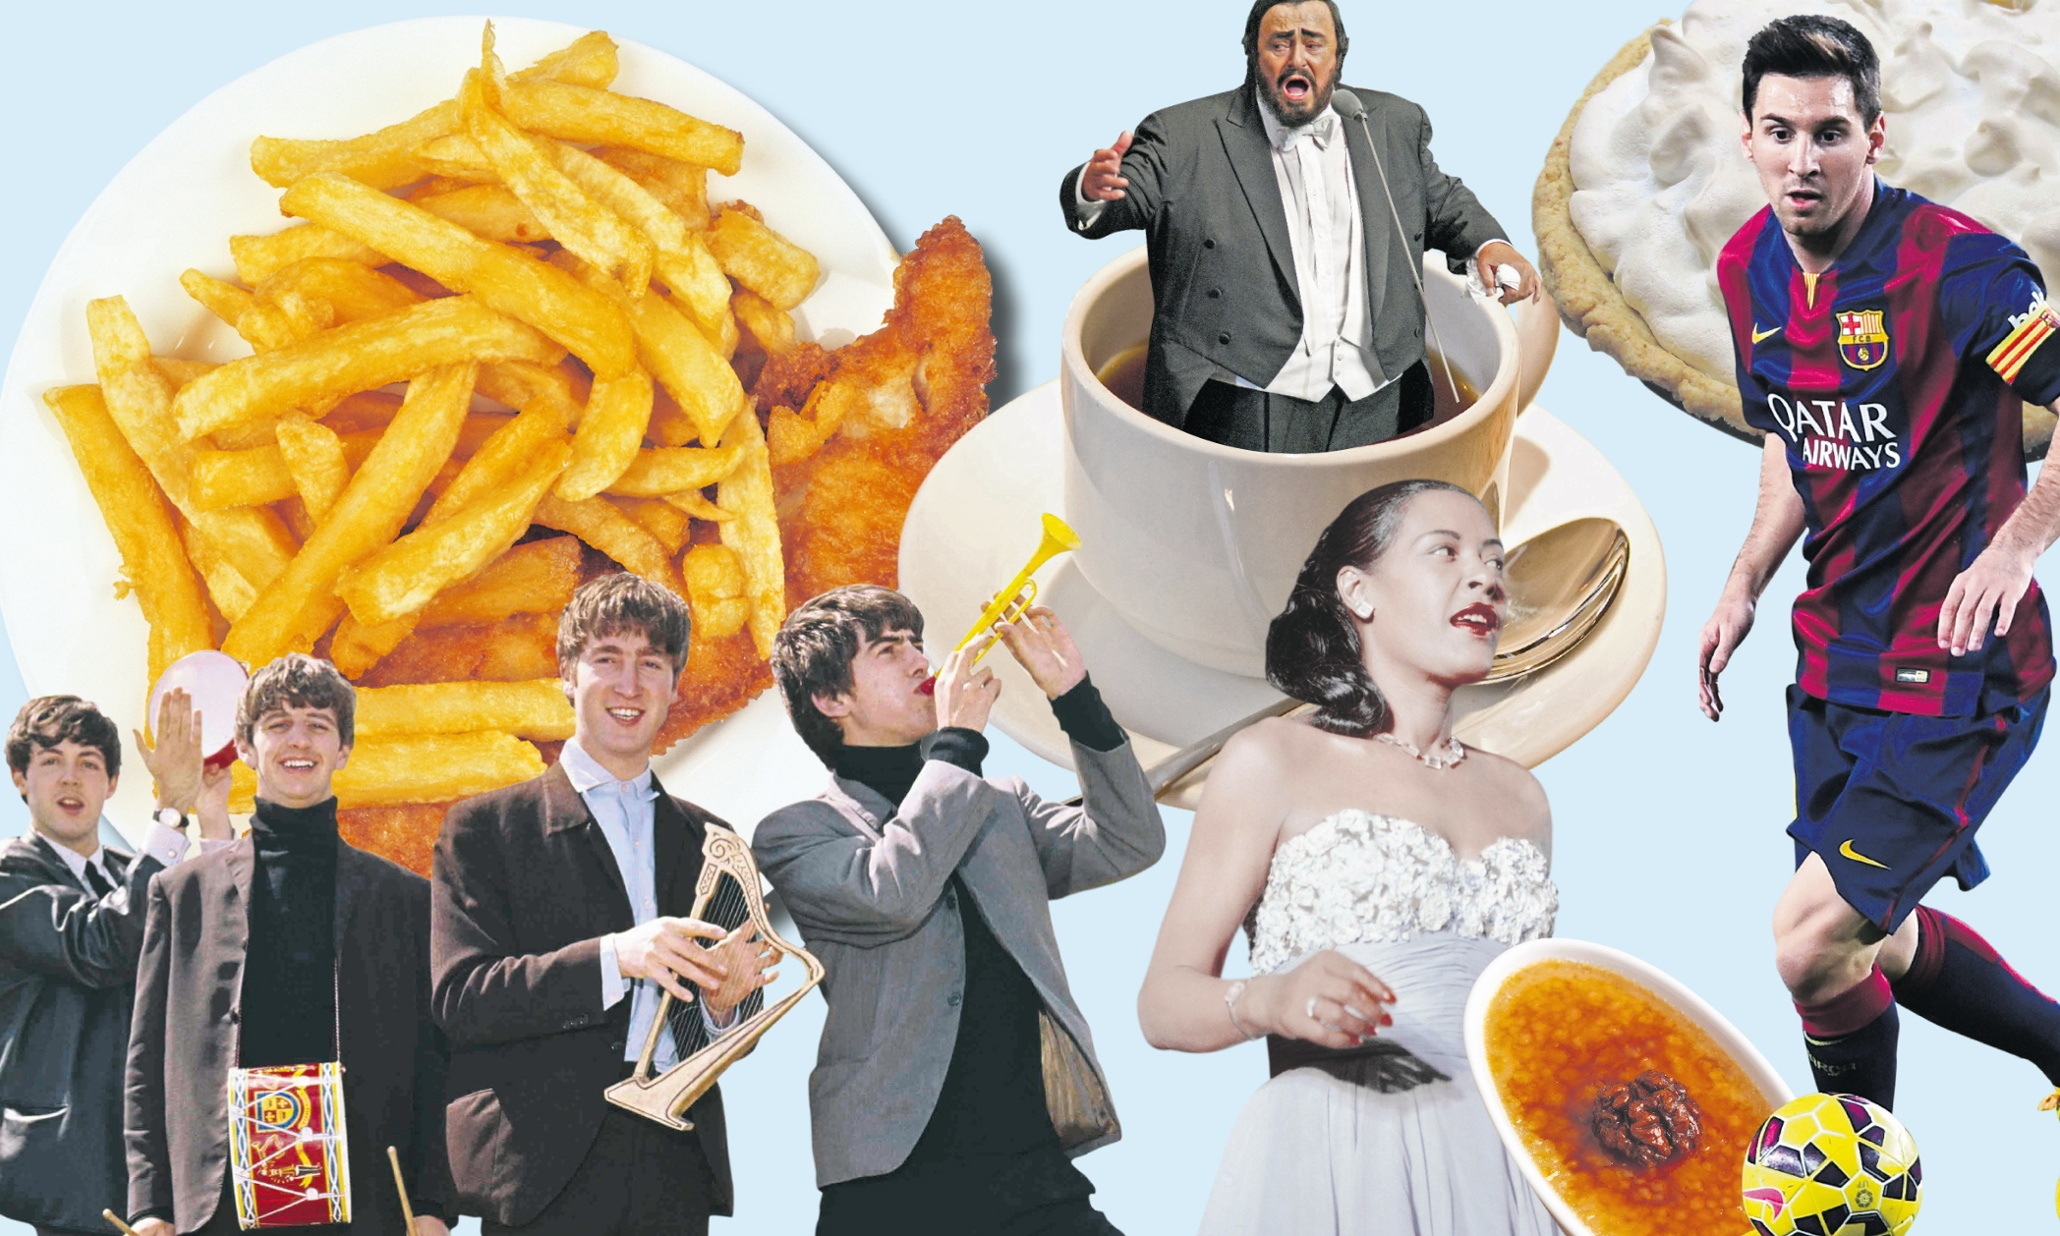 Melody on the menu: how a sprinkle of Mozart might give your meal zing